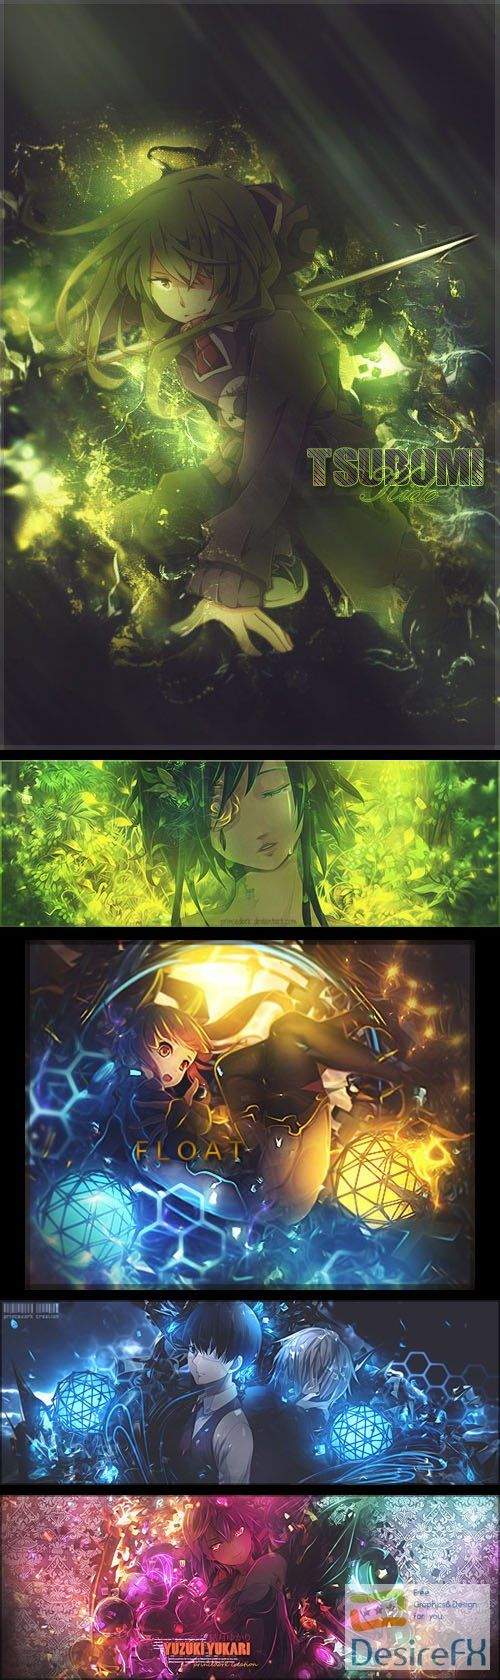 5 Awesome Anime PSD Templates Collection